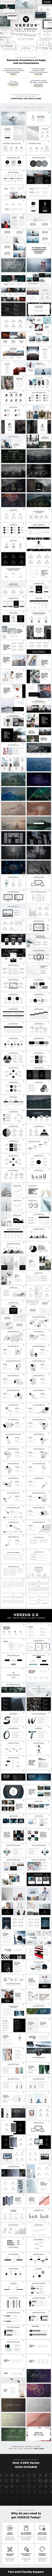 The 22 Best Minimalist Powerpoint Presentation Templates Images On